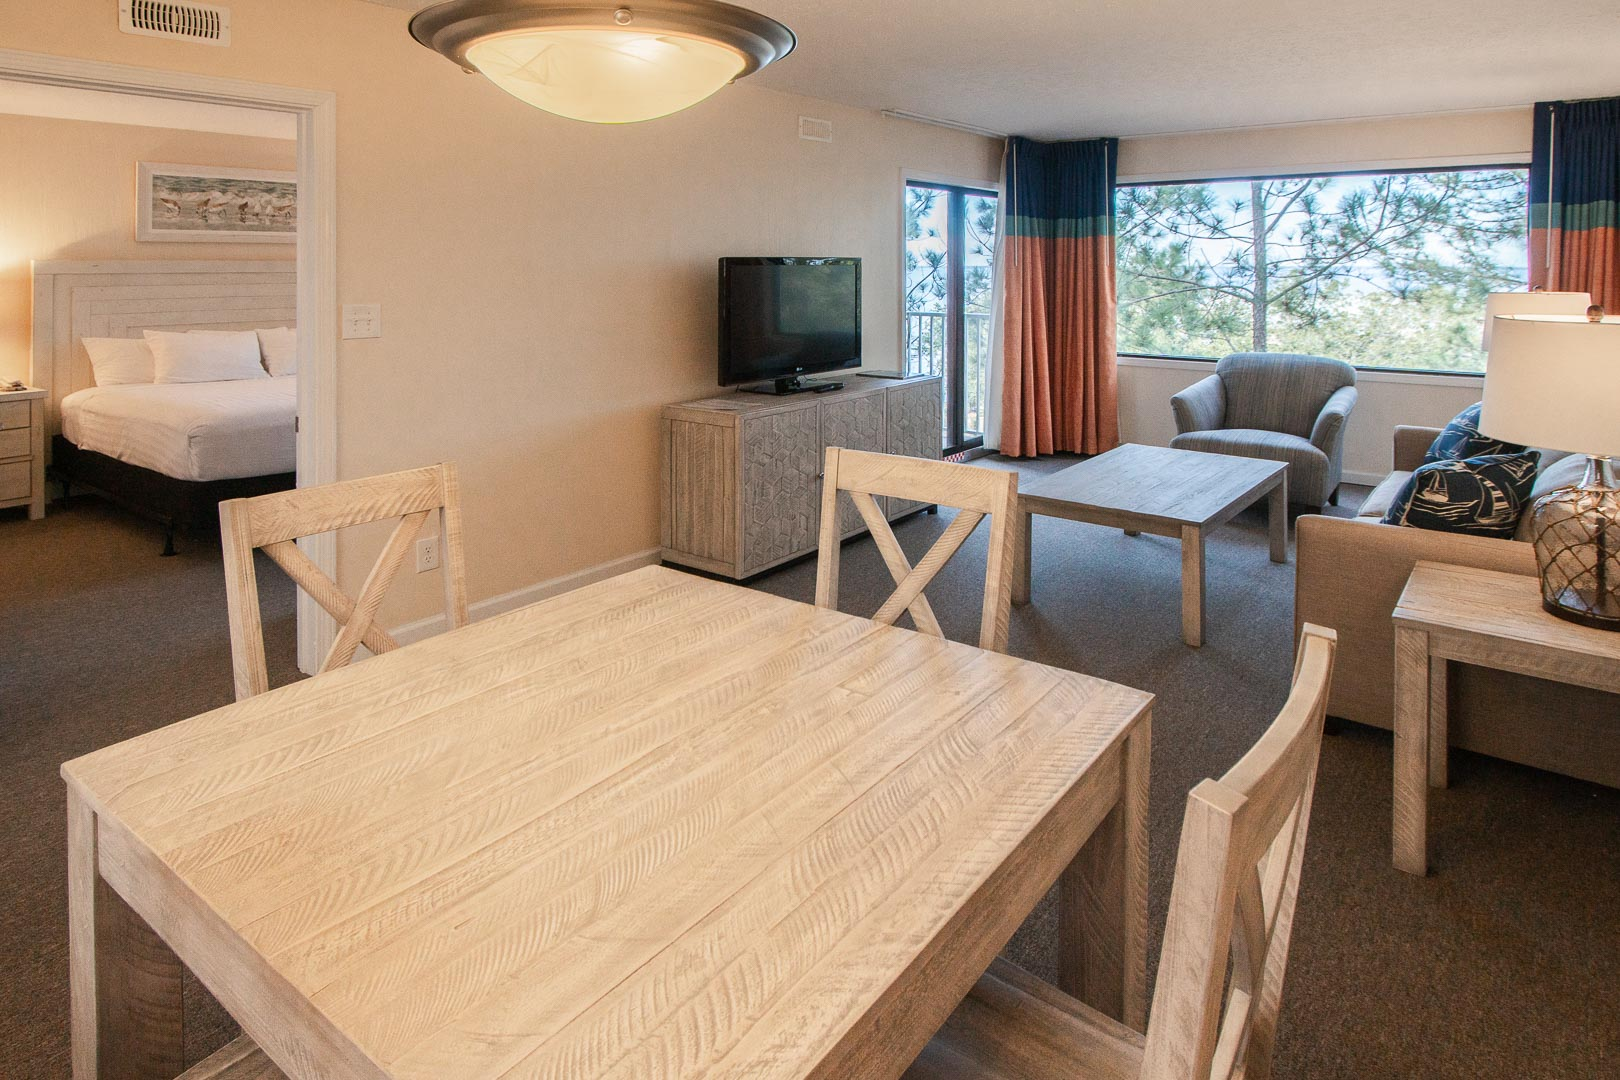 An expansive one bedroom unit at VRI's Bay Club of Sandestin in Florida.